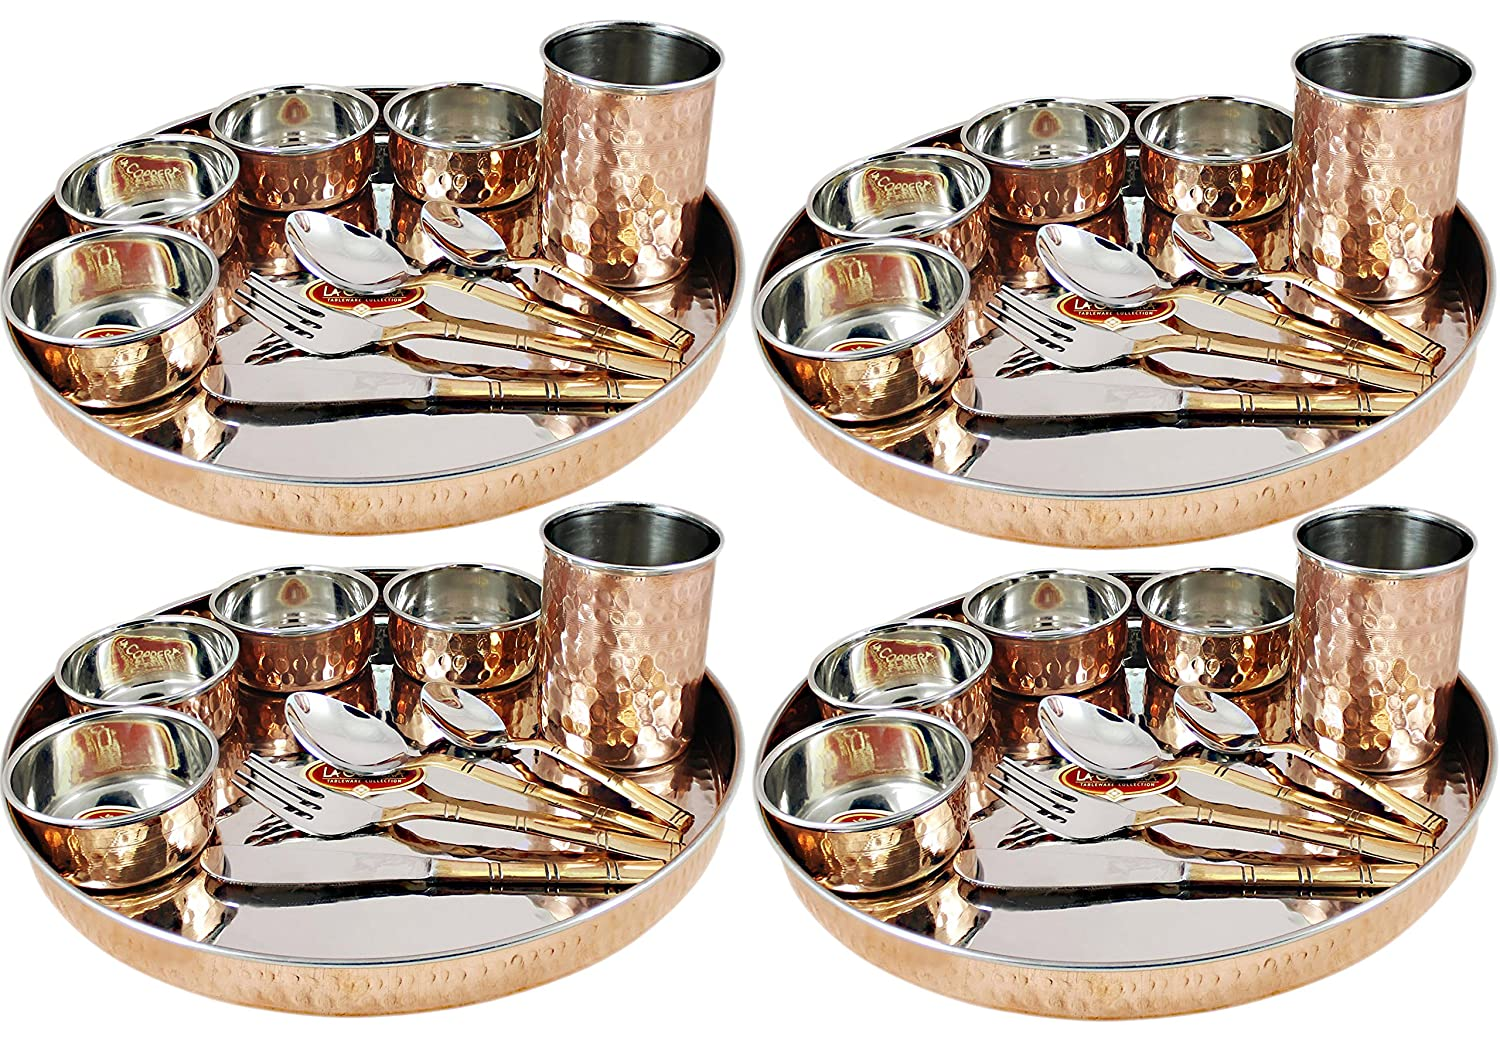 Amazon.com | Traditional Dinnerware Set 40 Piece Service for 4 Dinner Plates Bowls Mugs and Cutlery Set Copper Stainless Steel Dinnerware Sets  sc 1 st  Amazon.com & Amazon.com | Traditional Dinnerware Set 40 Piece Service for 4 ...